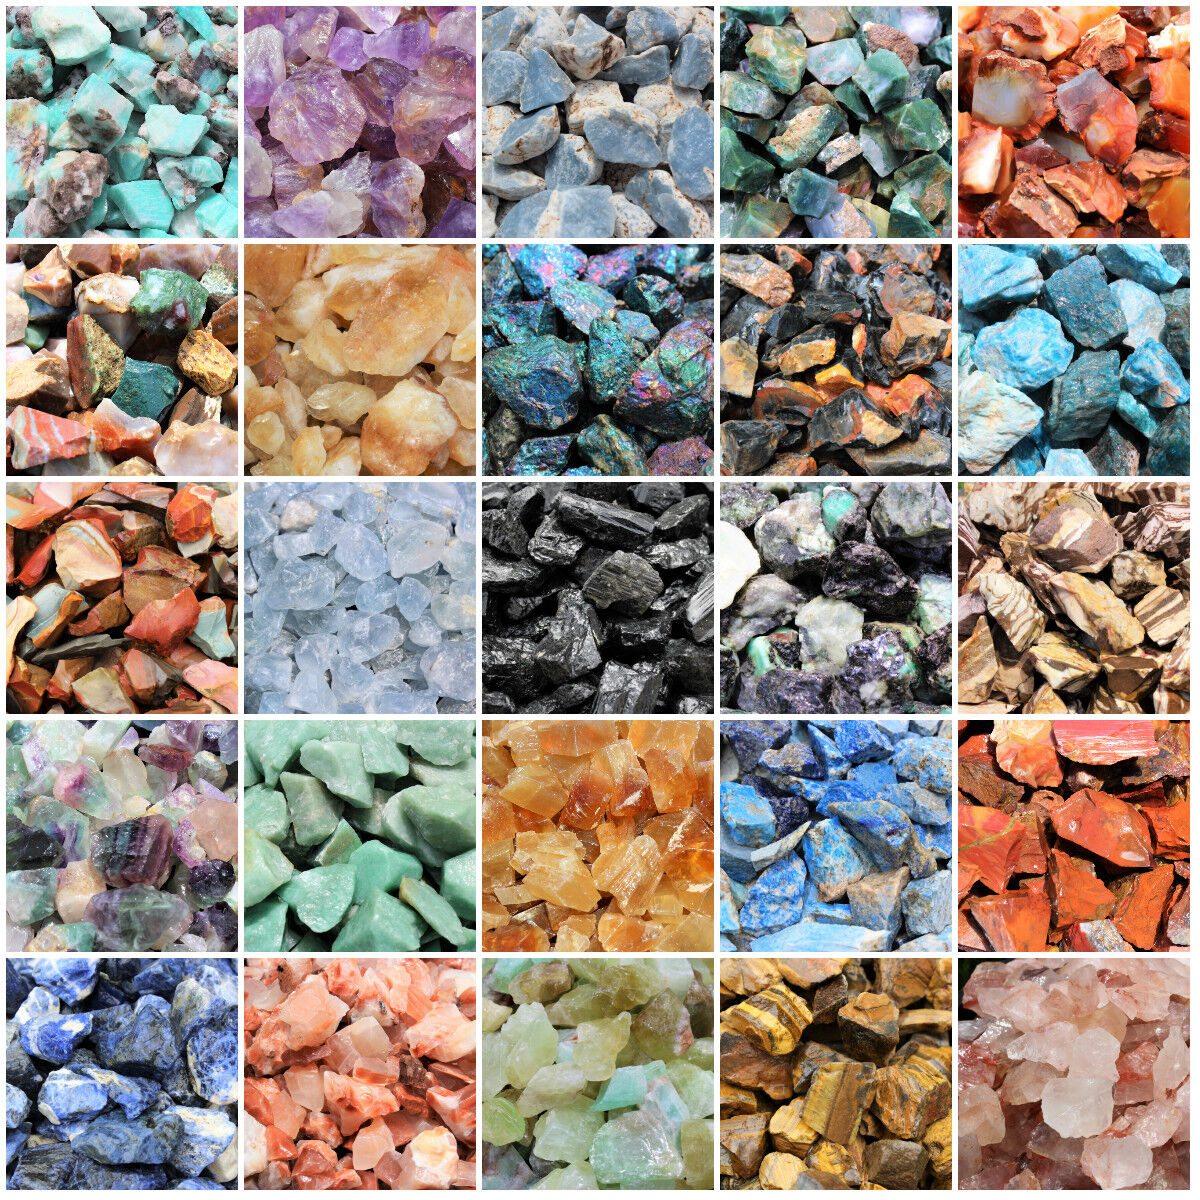 Natural Rough Stones Rocks - Huge Choice - Bulk Lots Lbs or